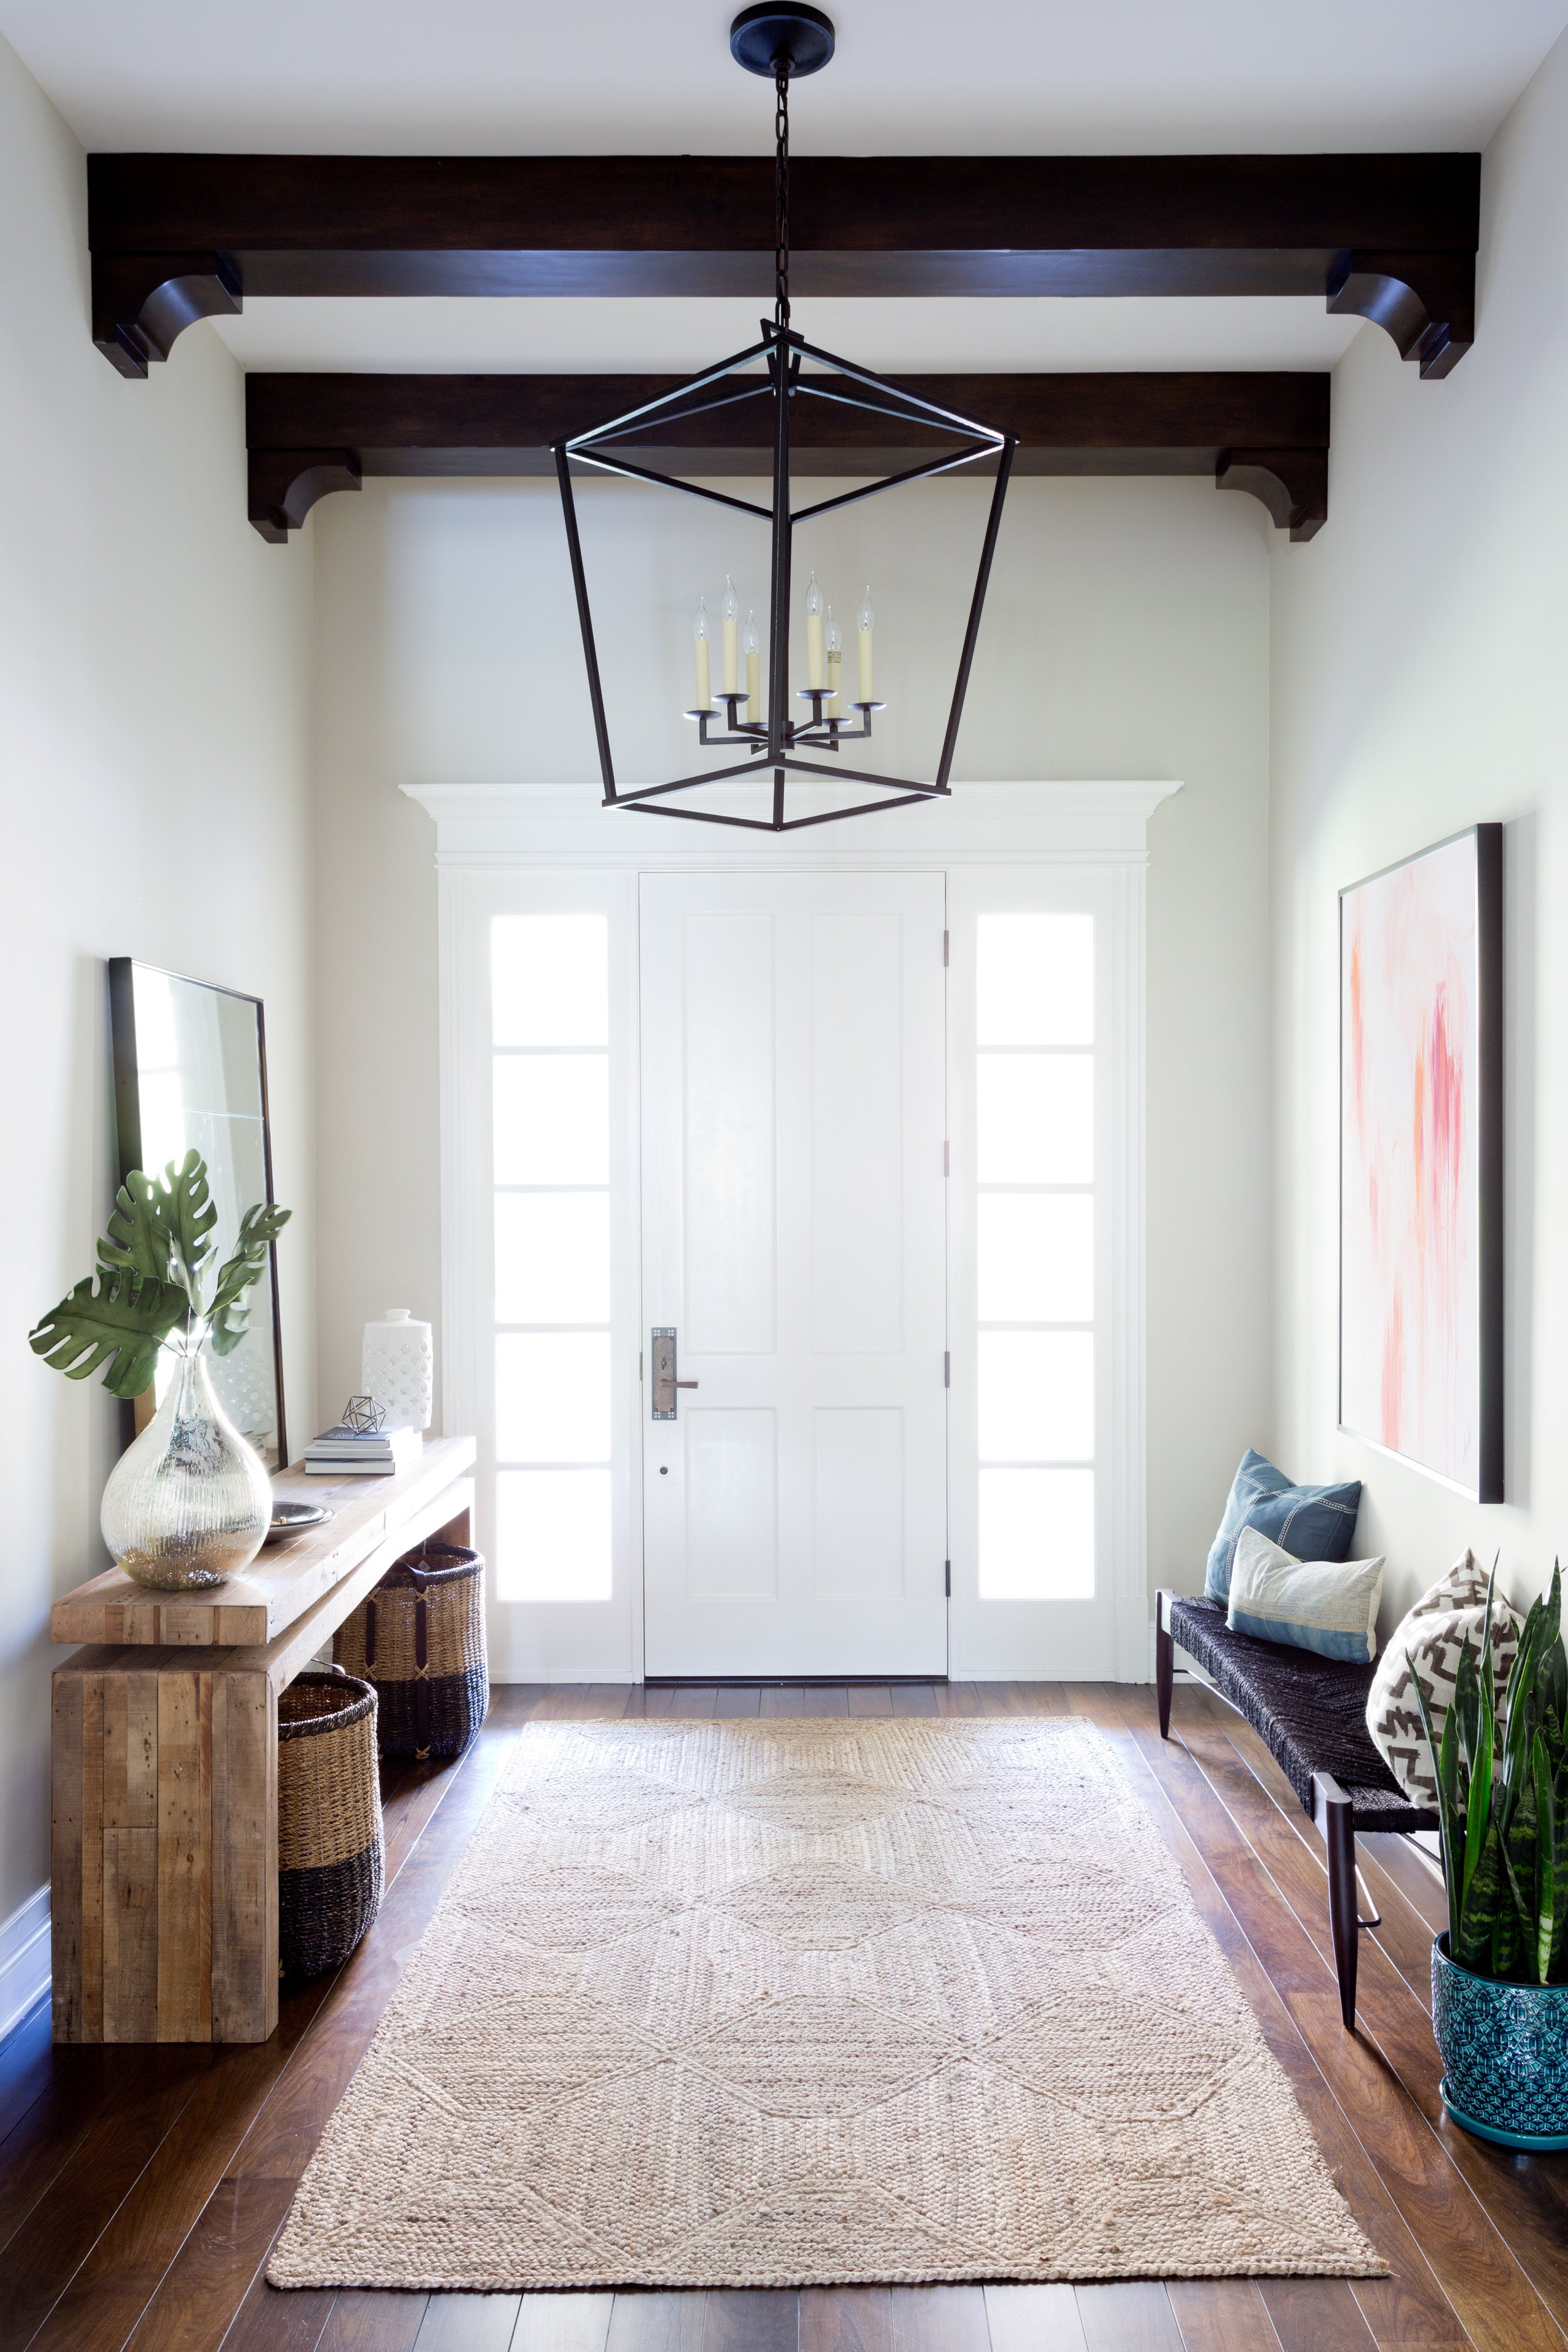 Bright transitional entryway design by Lindsey Brooke Design | Lake Sherwood Project.jpg